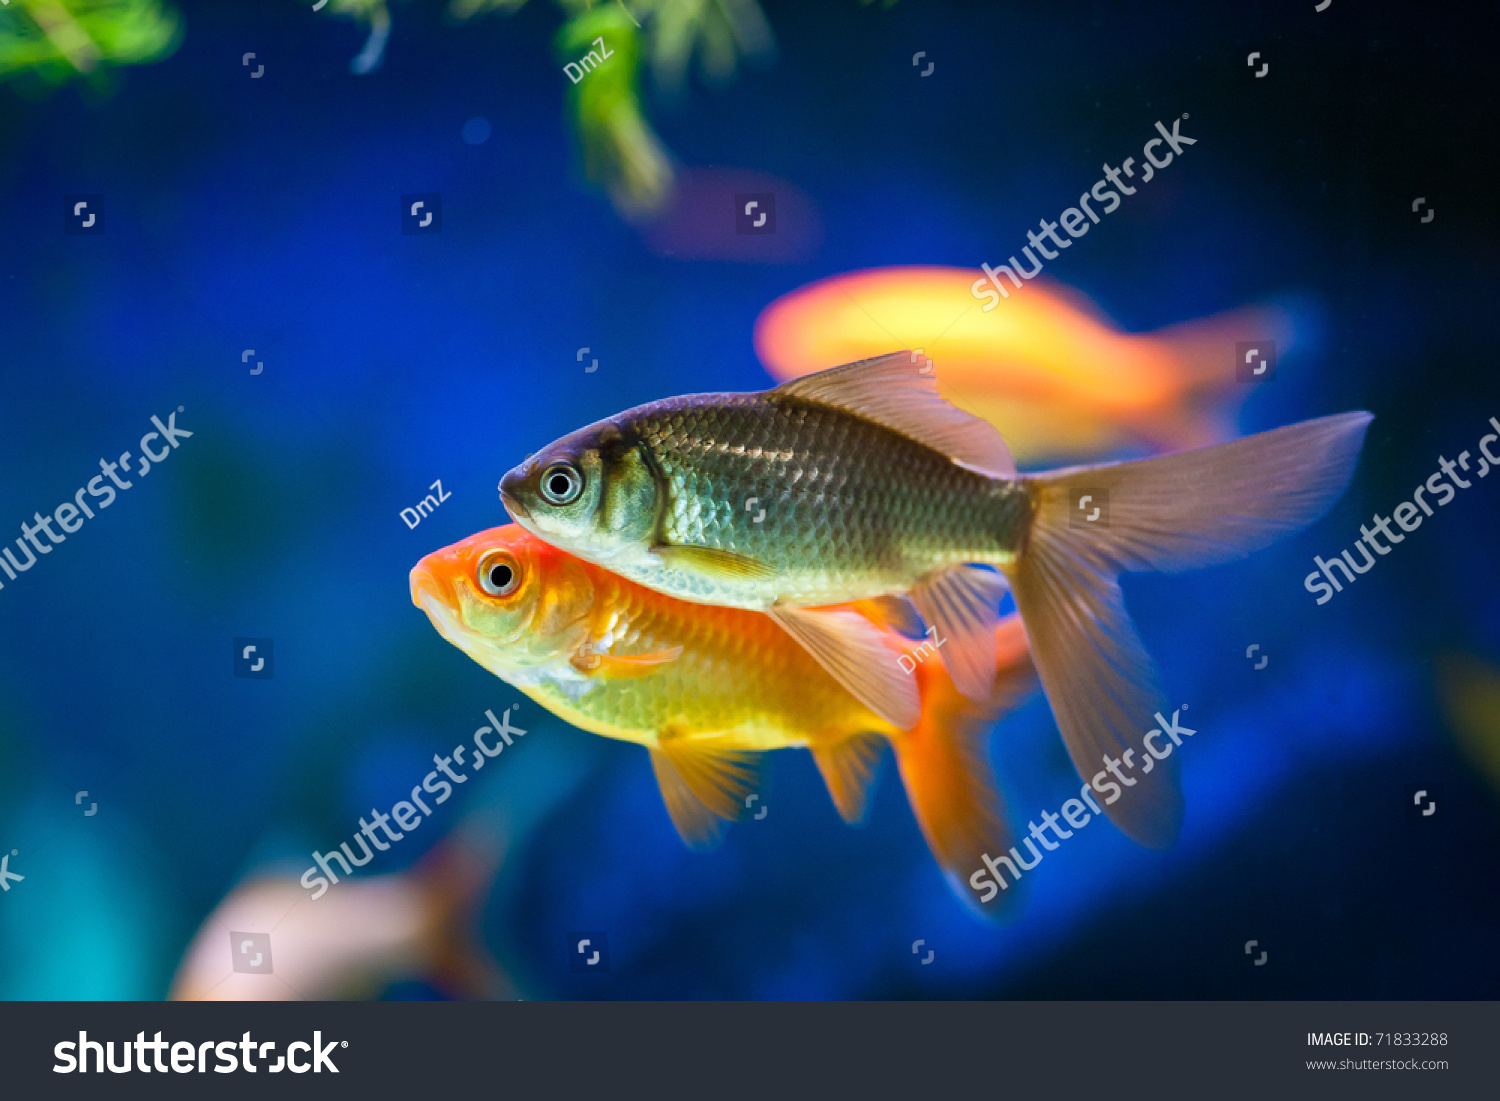 Cute little fish in an aquarium stock photo 71833288 for Cute freshwater fish